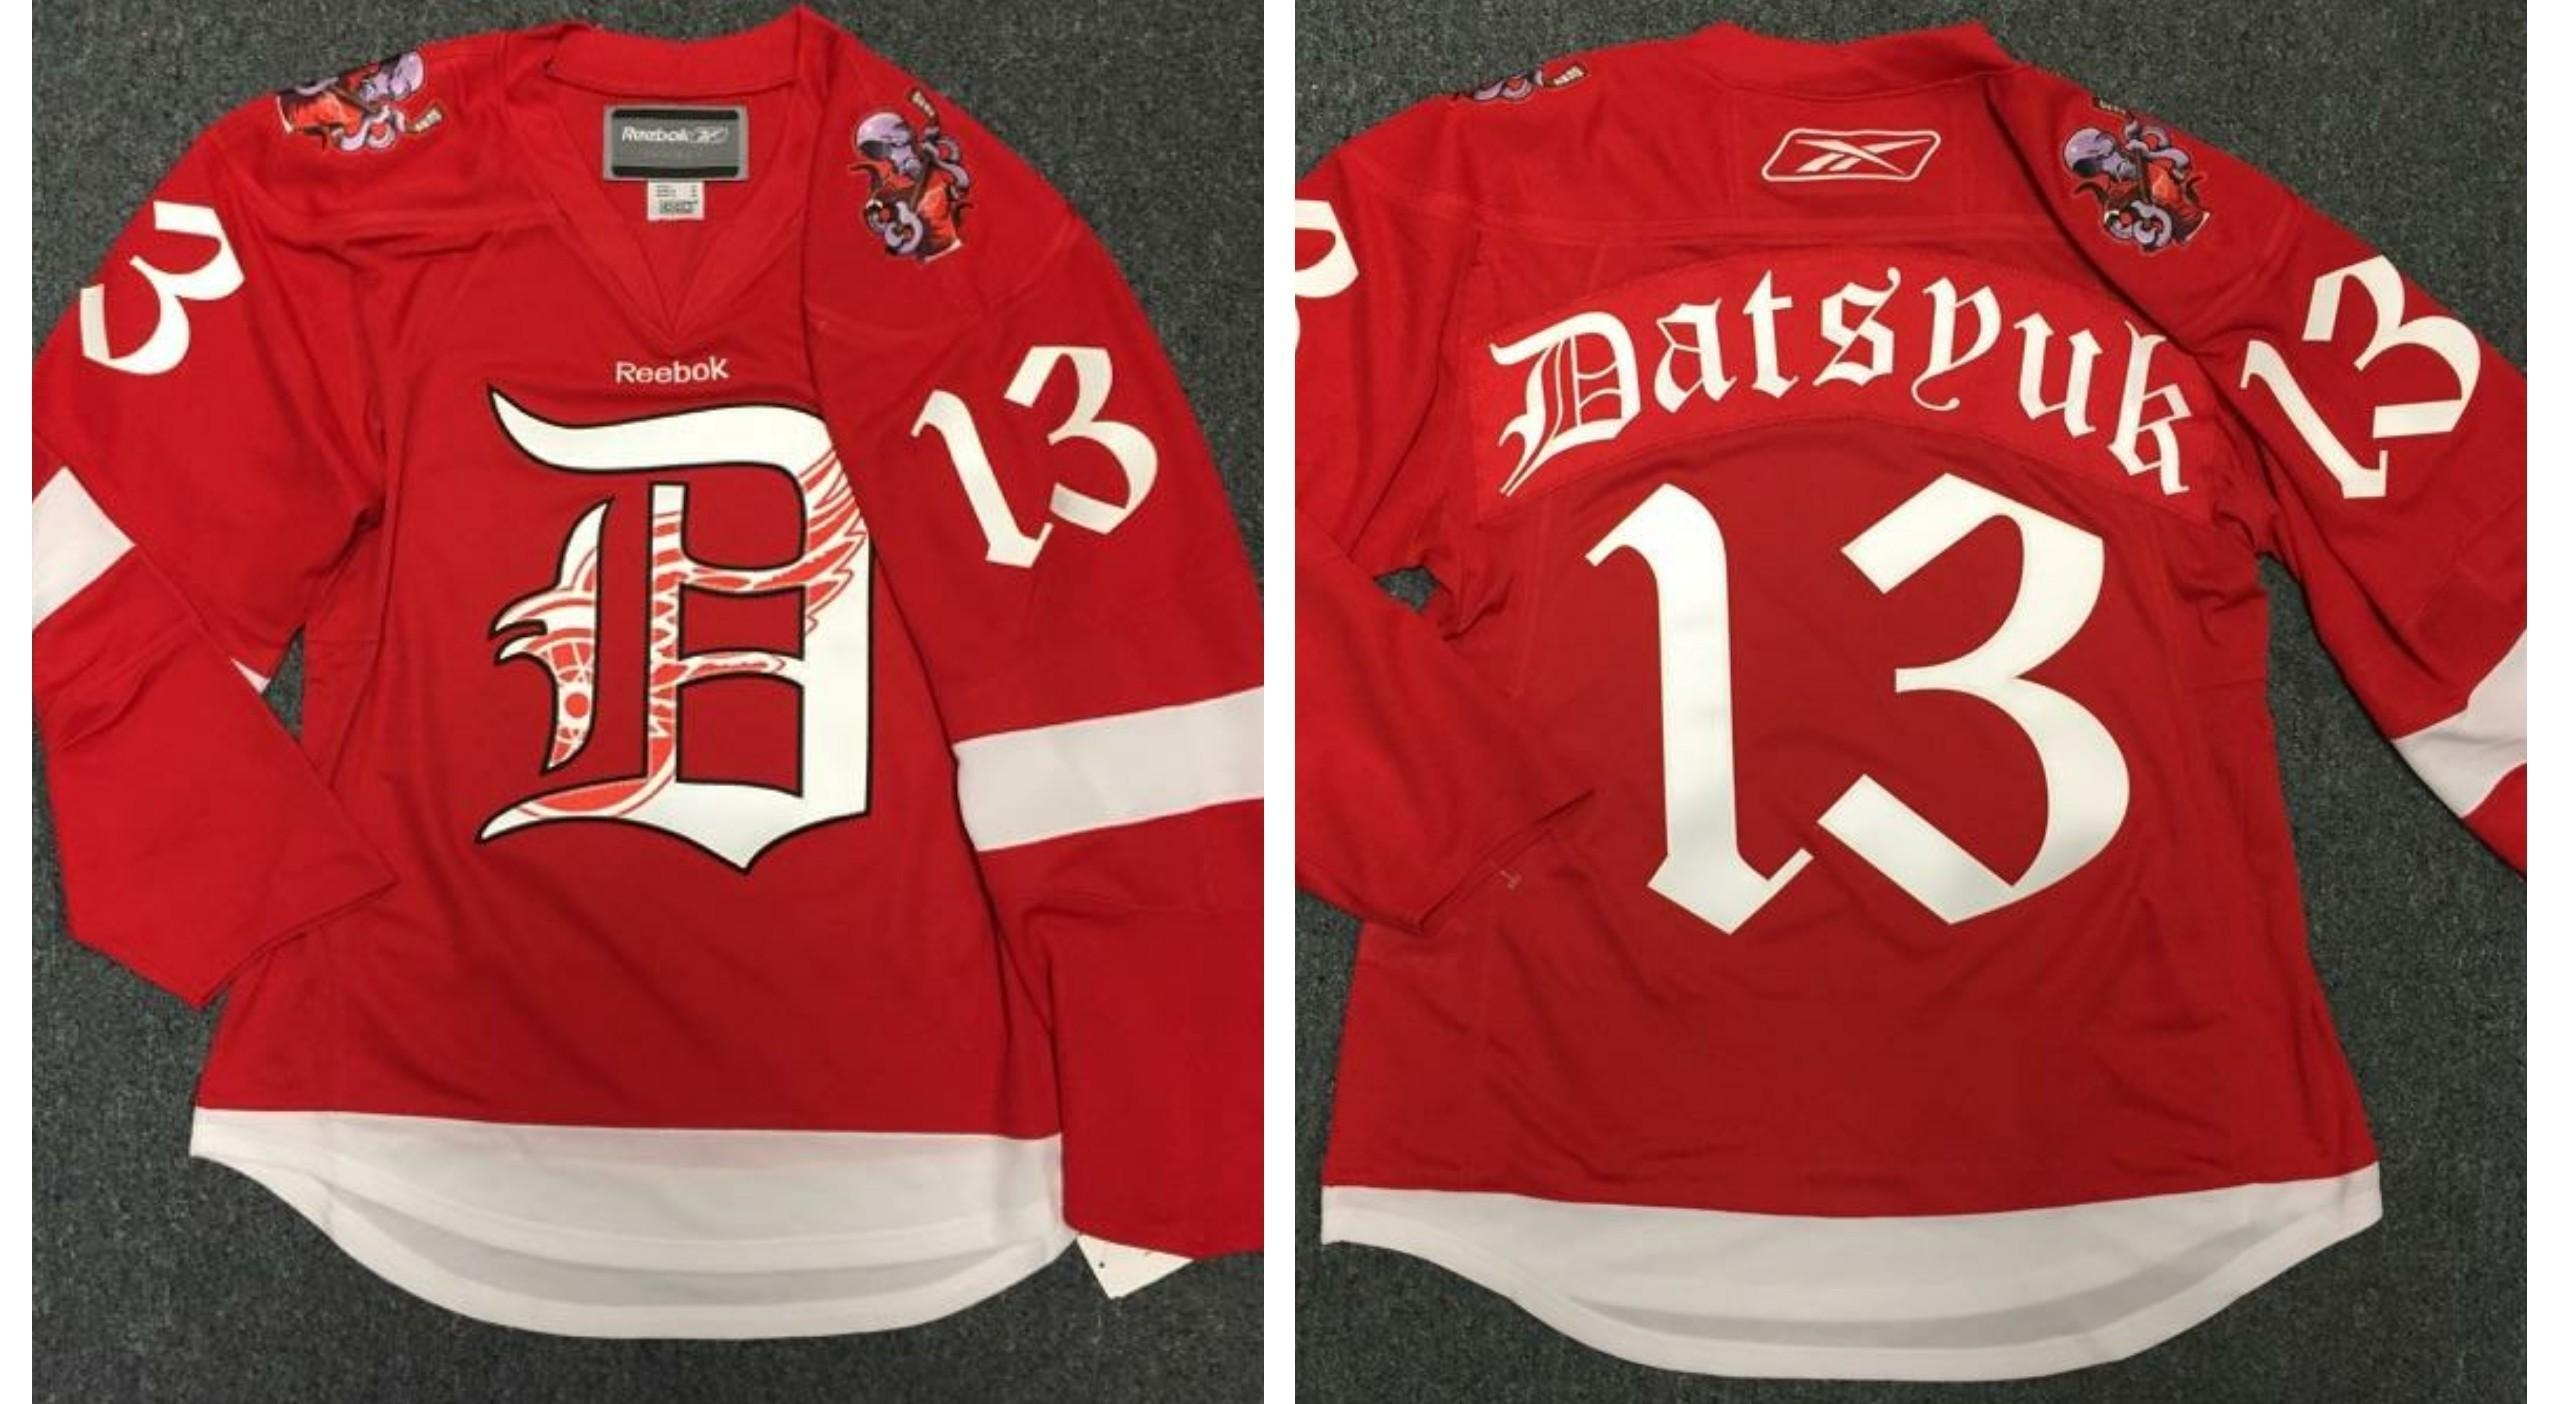 Reddit user creates custom Red Wings jersey as a gift for Christmas ... 041f9e6c2815